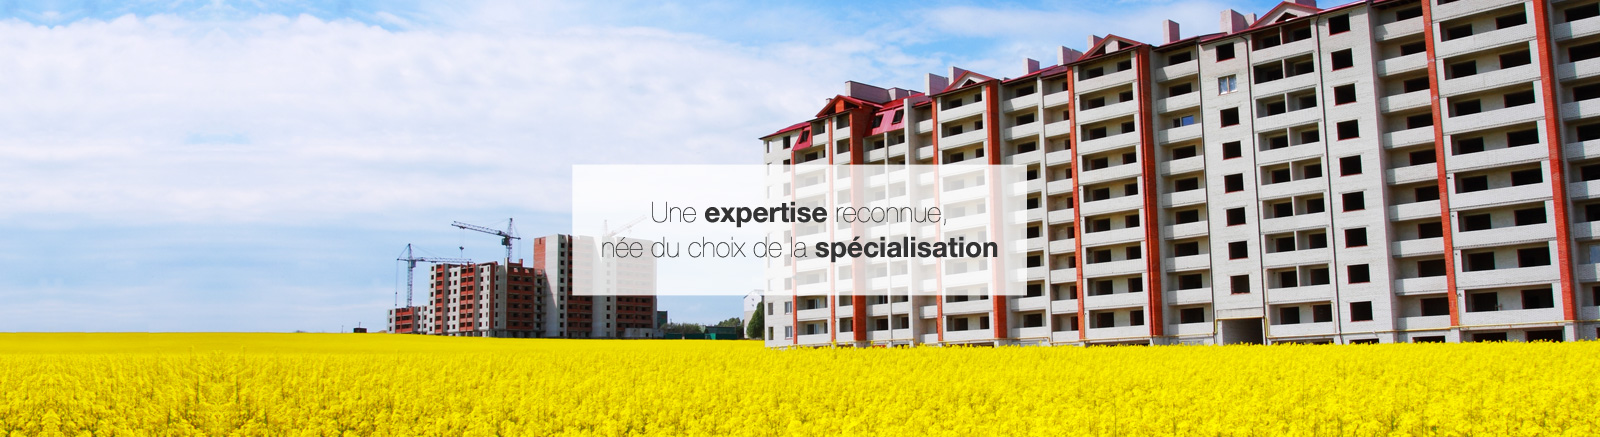 Une expertise reconue, Enjea